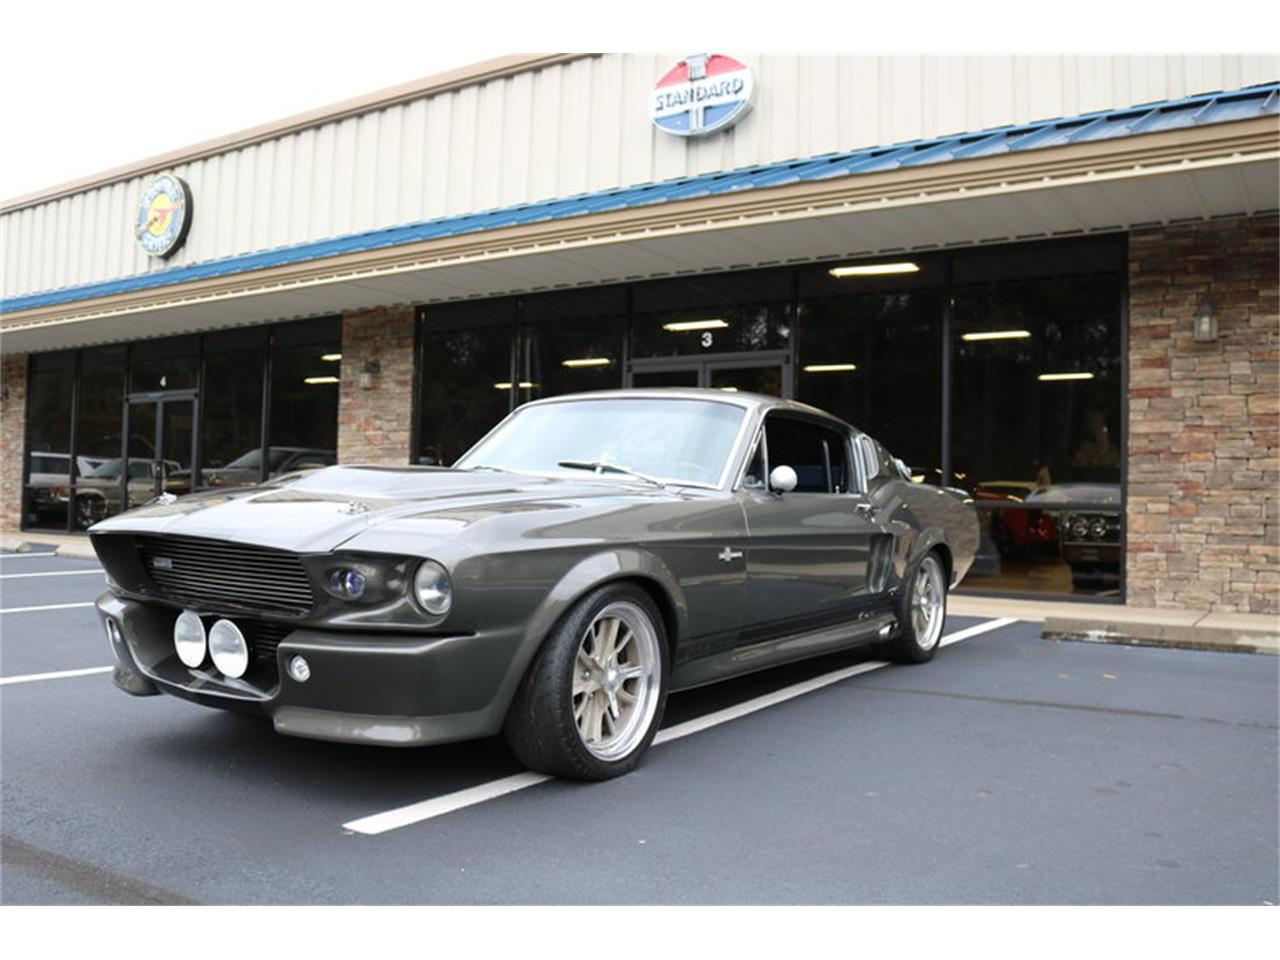 1967 Ford Mustang Shelby GT500 Replica for Sale ...